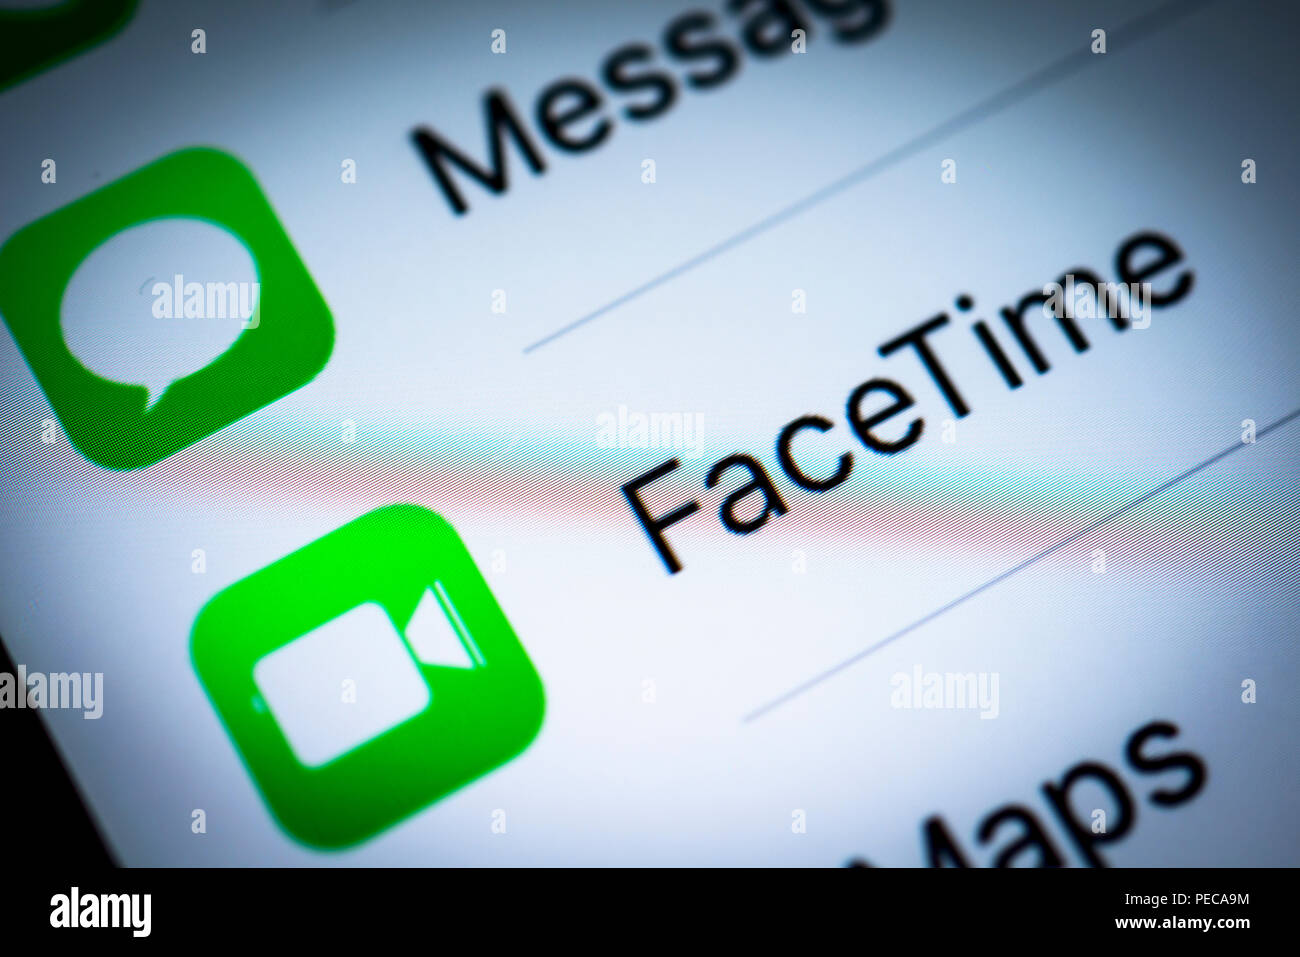 Facetime displayed on an iPhone, iOS, smartphone, display, close-up, detail, Germany - Stock Image